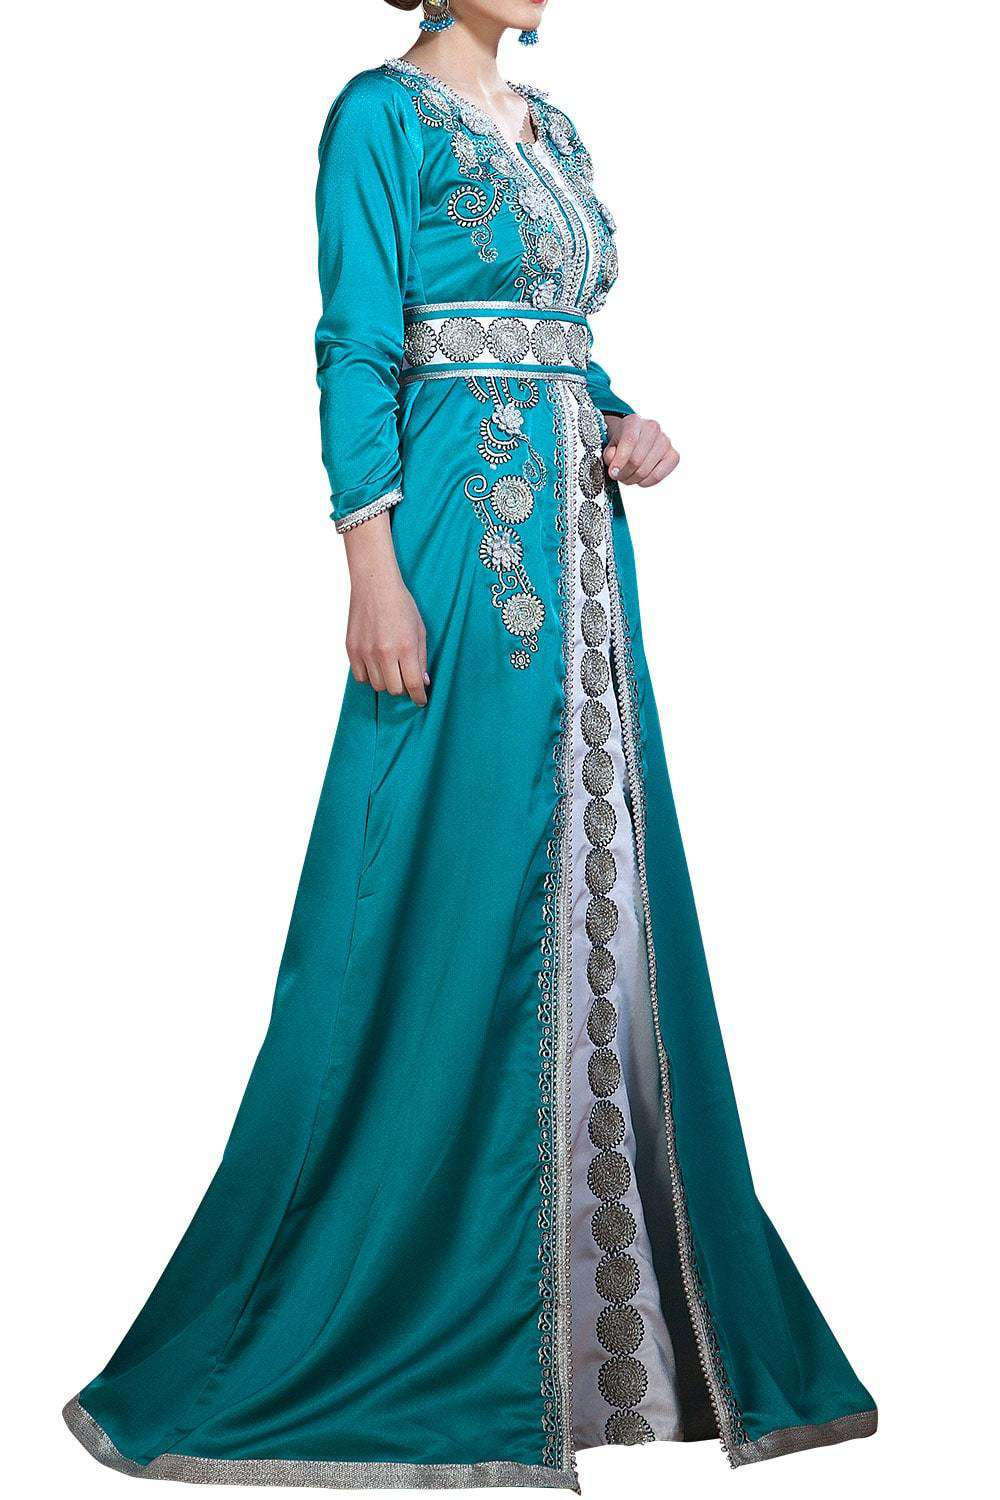 Exquisite Dark See Green and White Color Party Wear Takchita